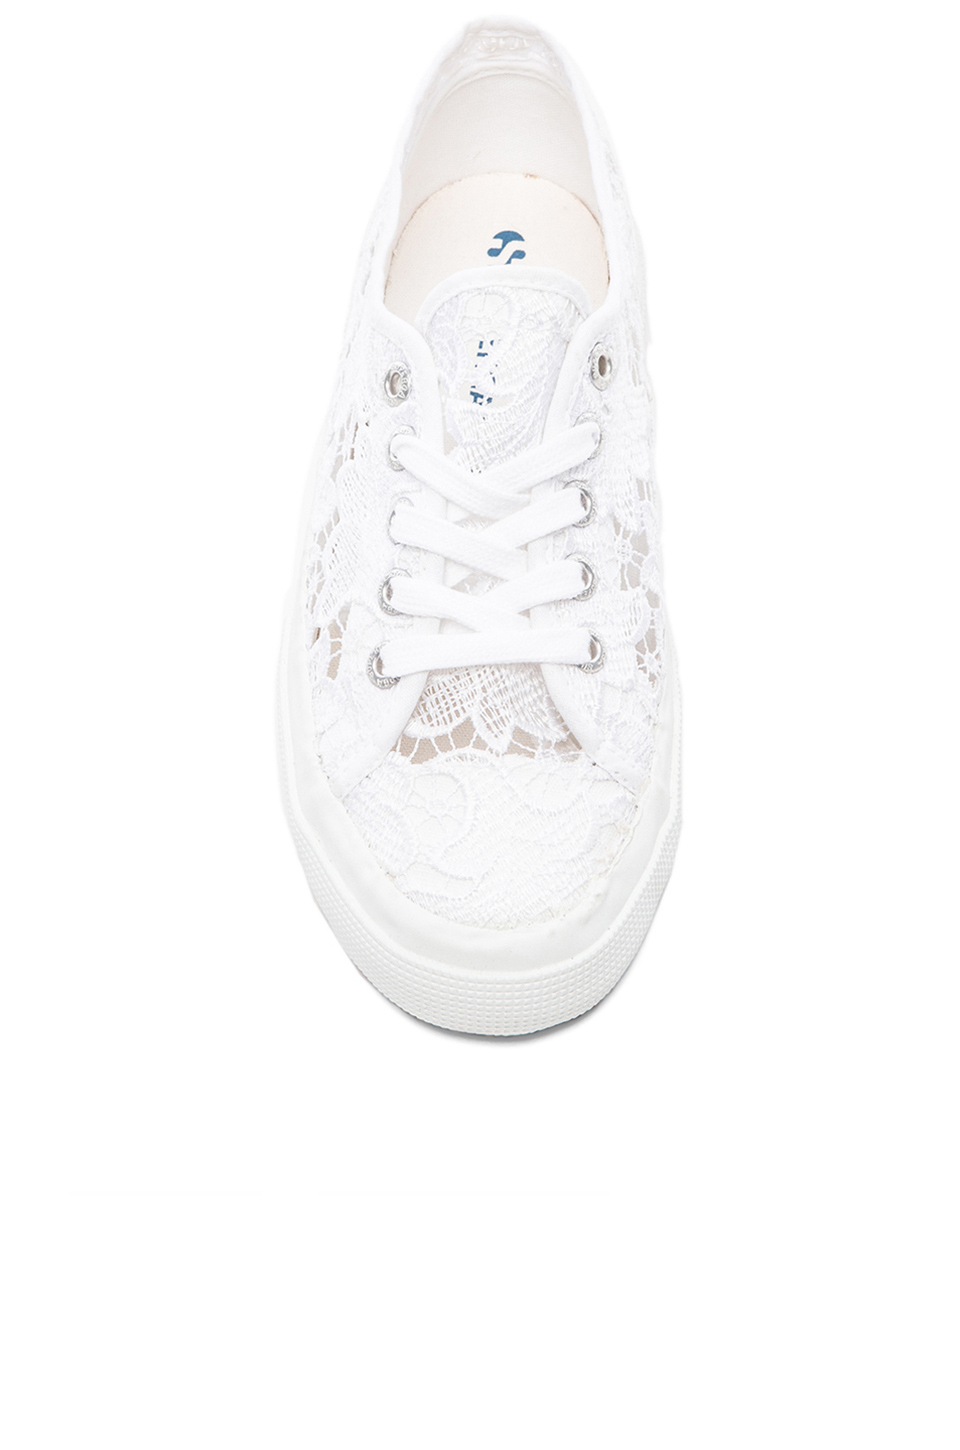 superga-white-lace-sneakers-product-0-536740434-normal.jpeg